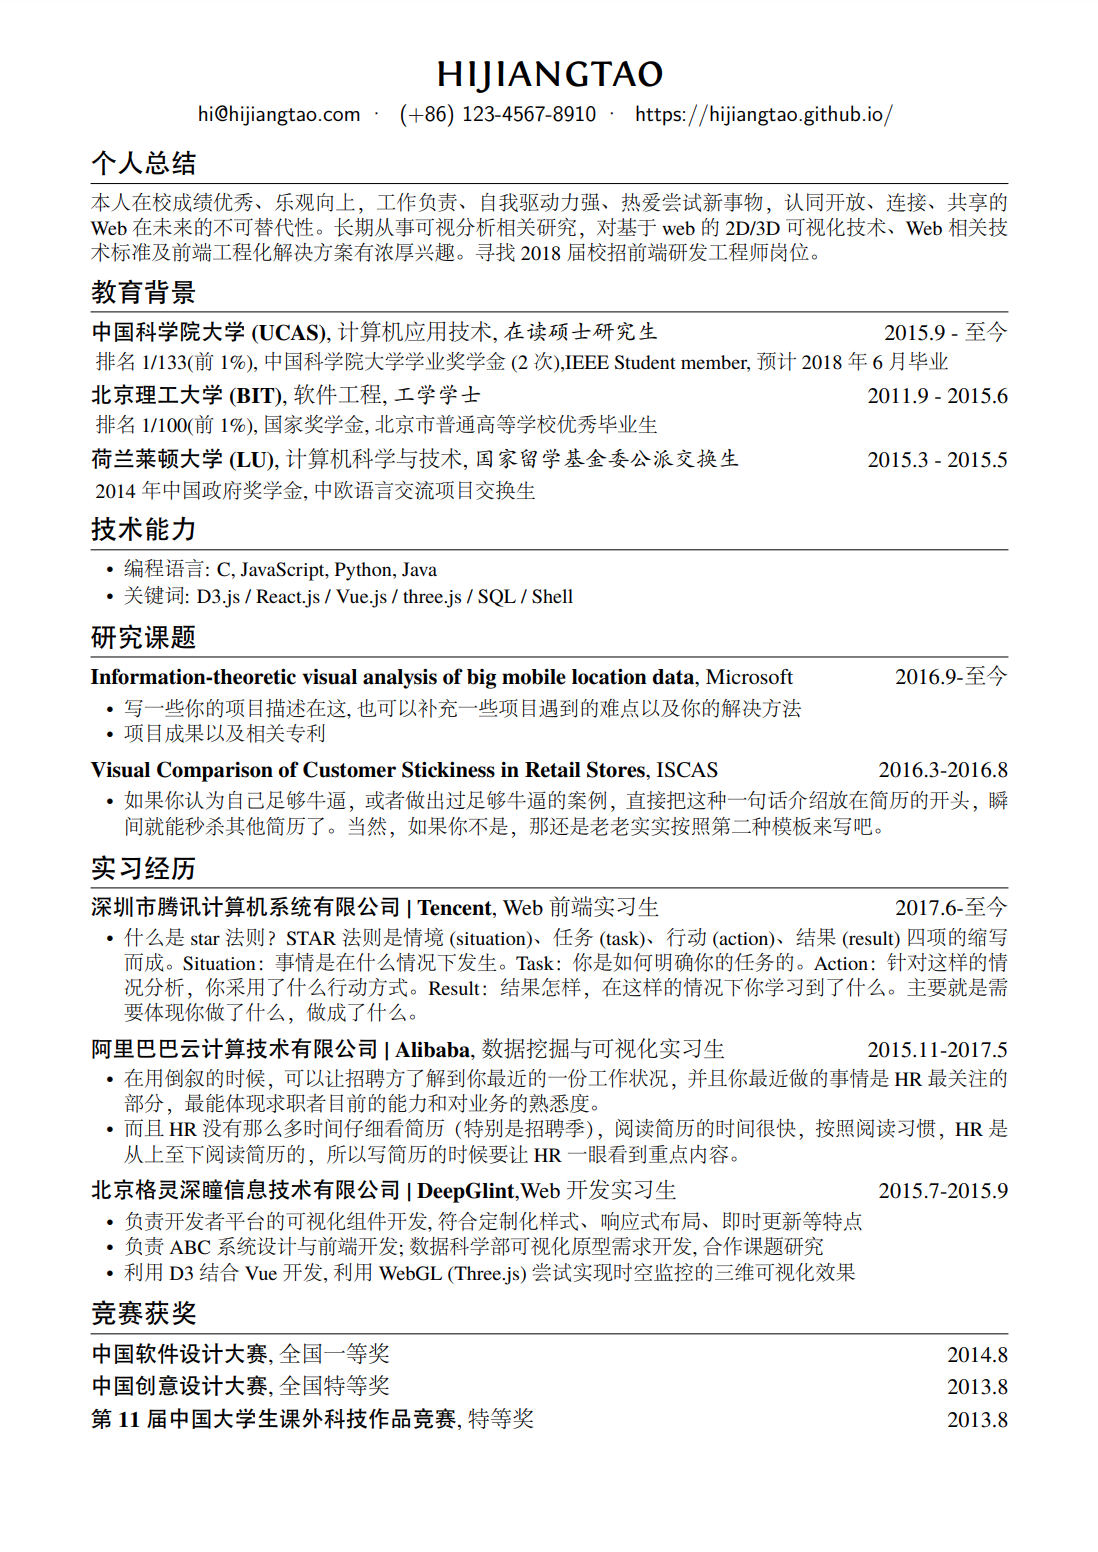 resume-zh_CN.png